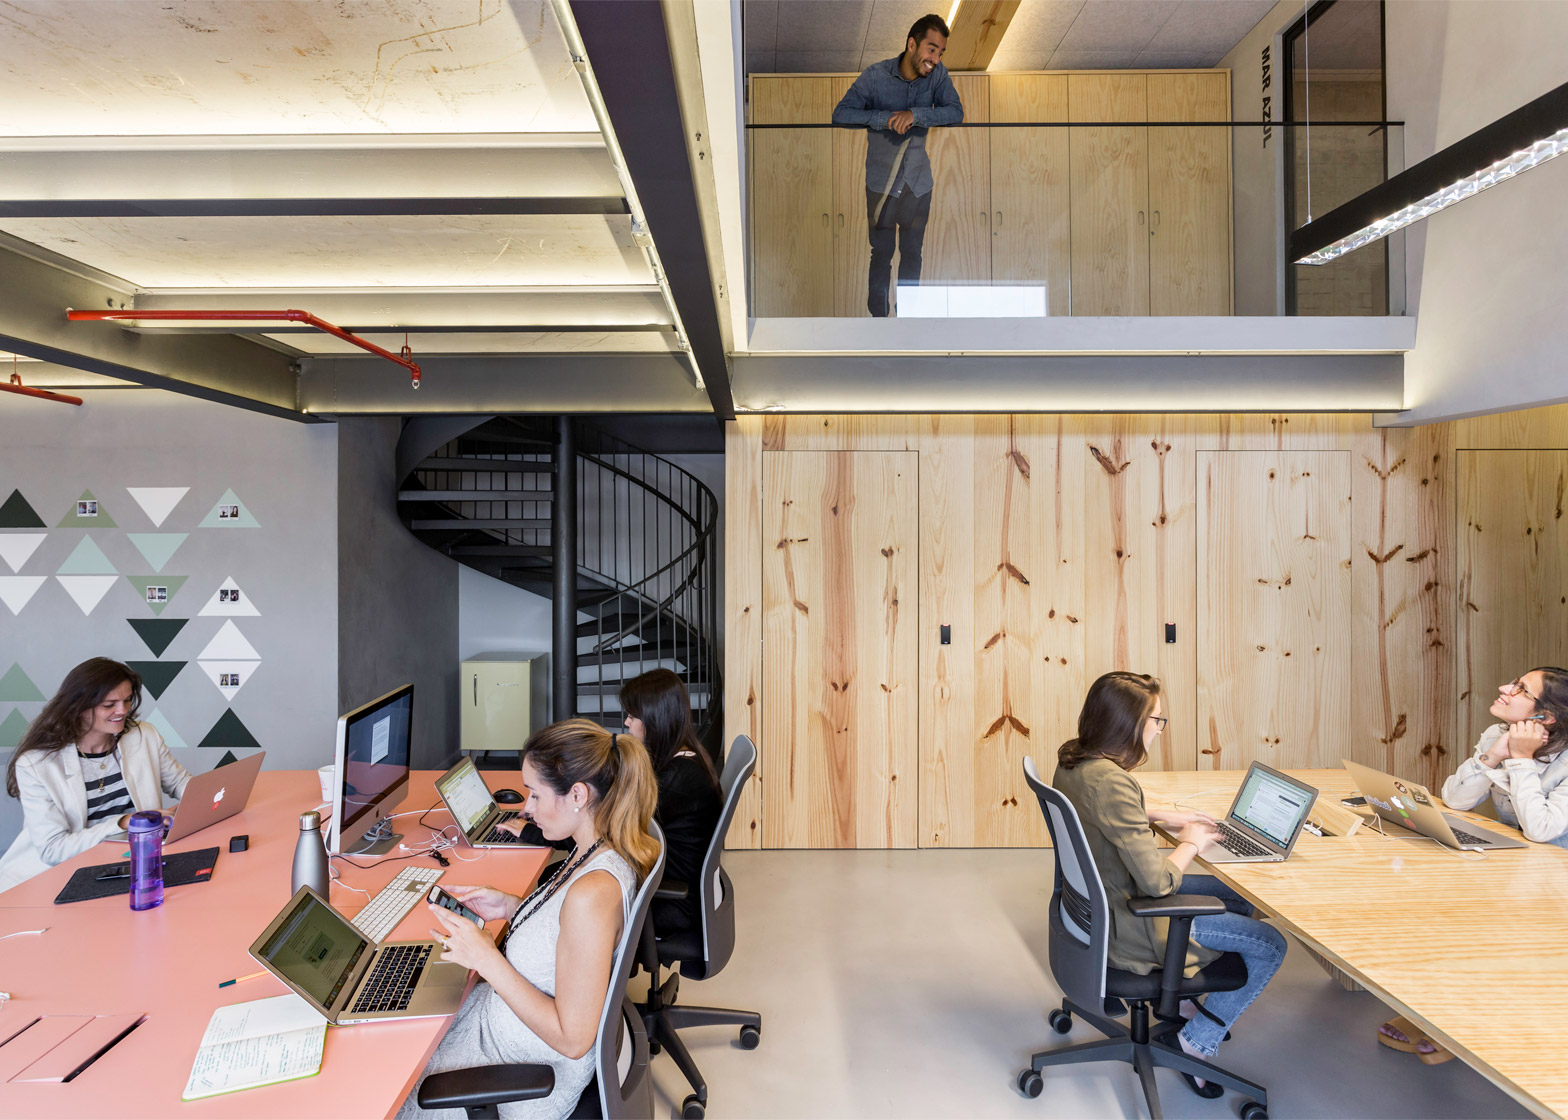 airbnb-offices_sao-paulo_mm18_dezeen_1568_8